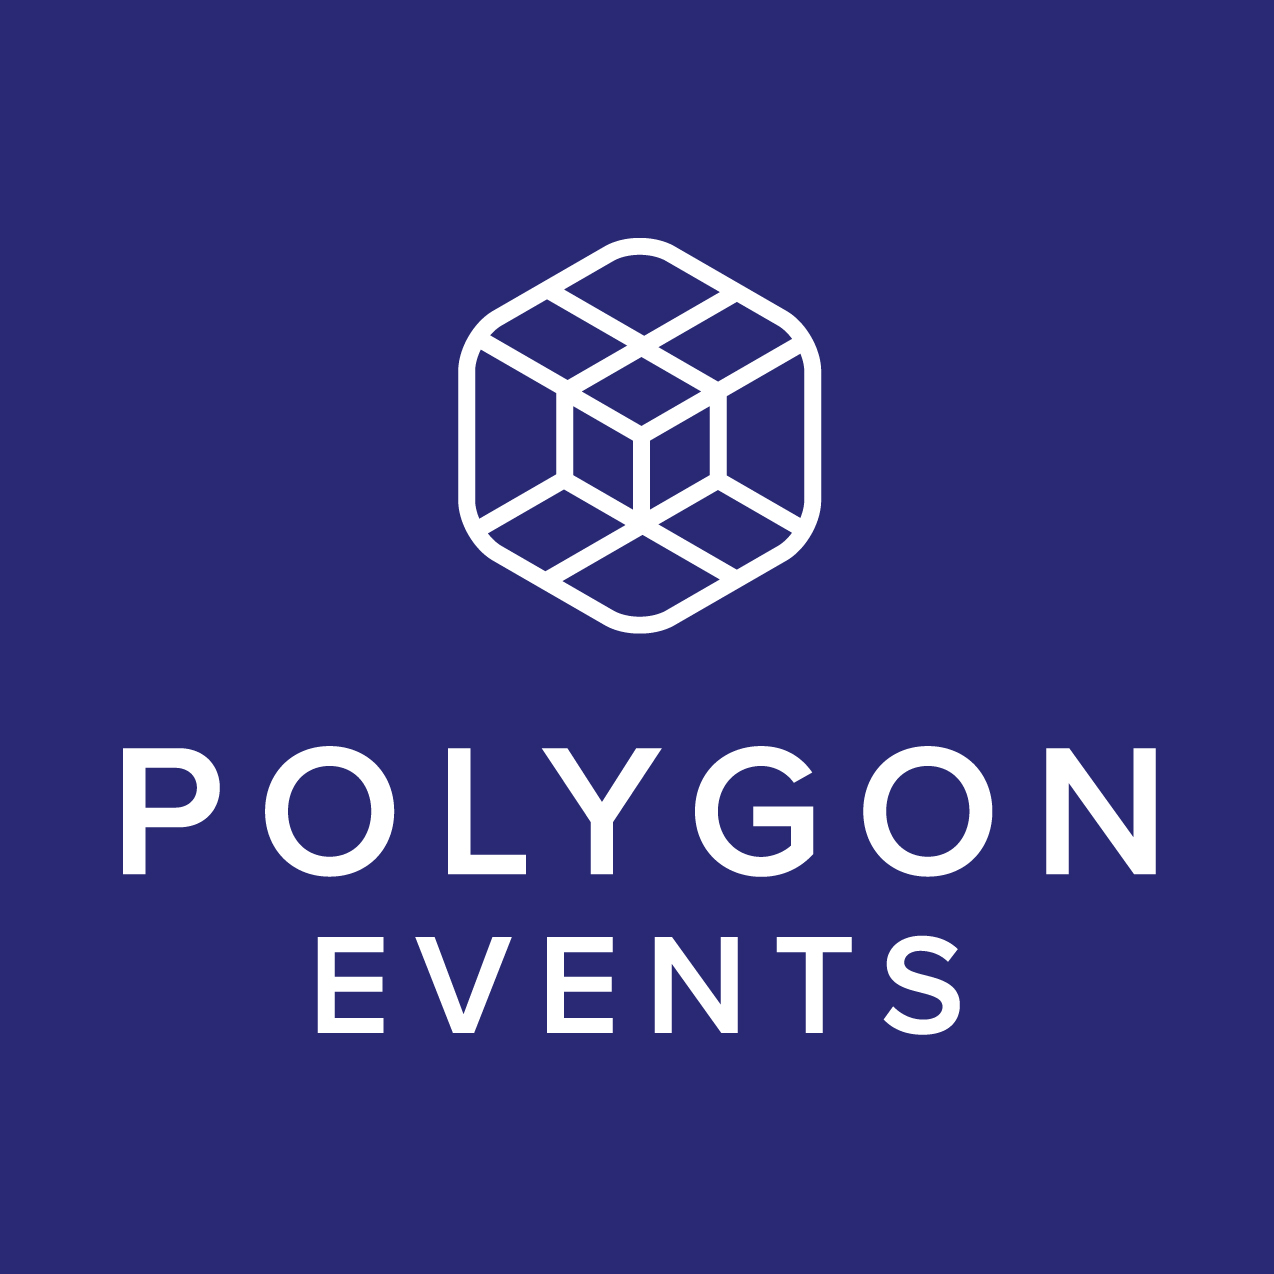 Polygon Events